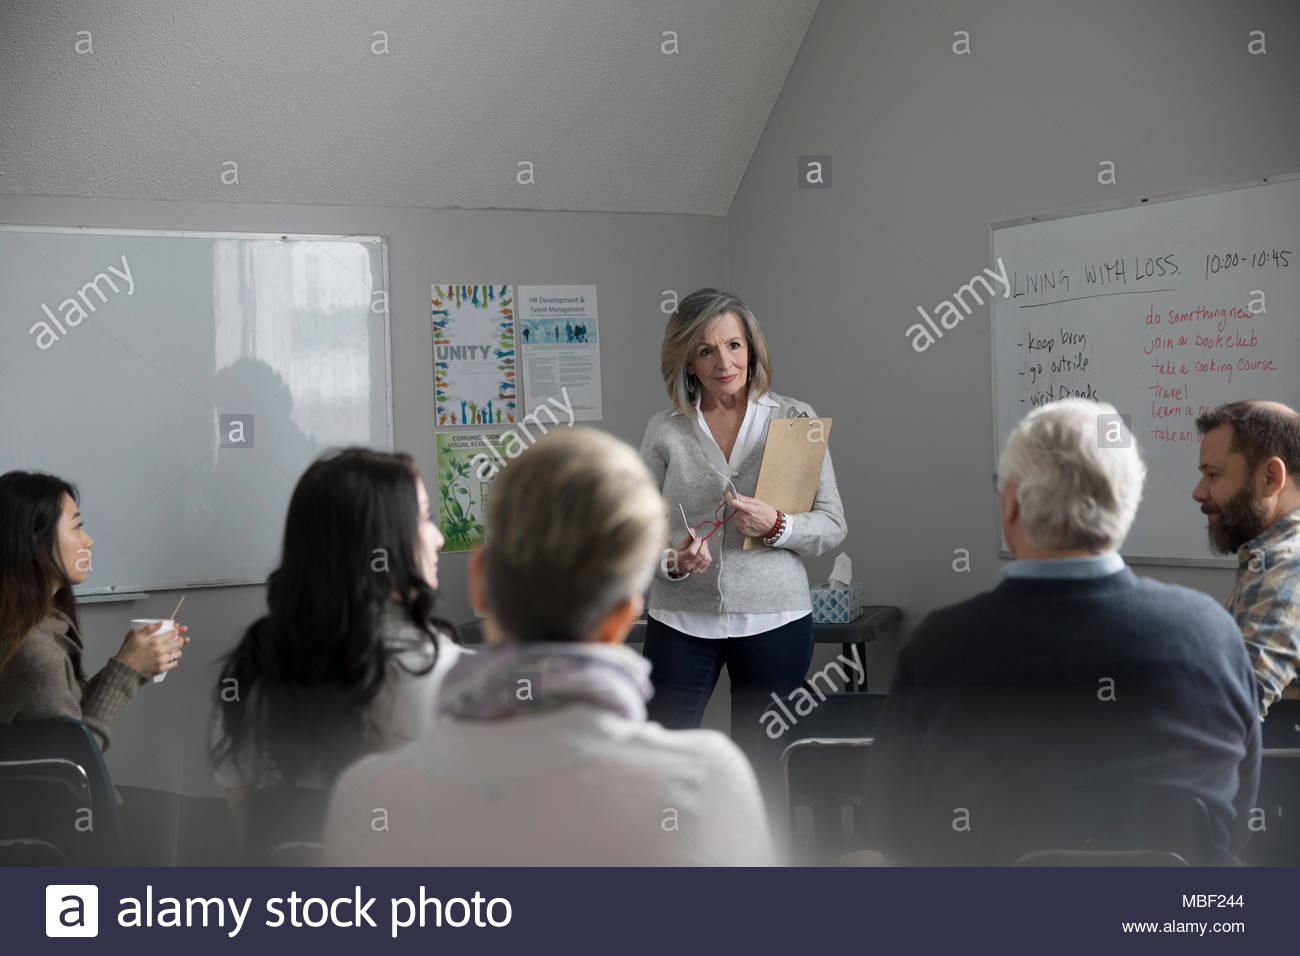 Woman with clipboard leading grief support group in community center - Stock Image